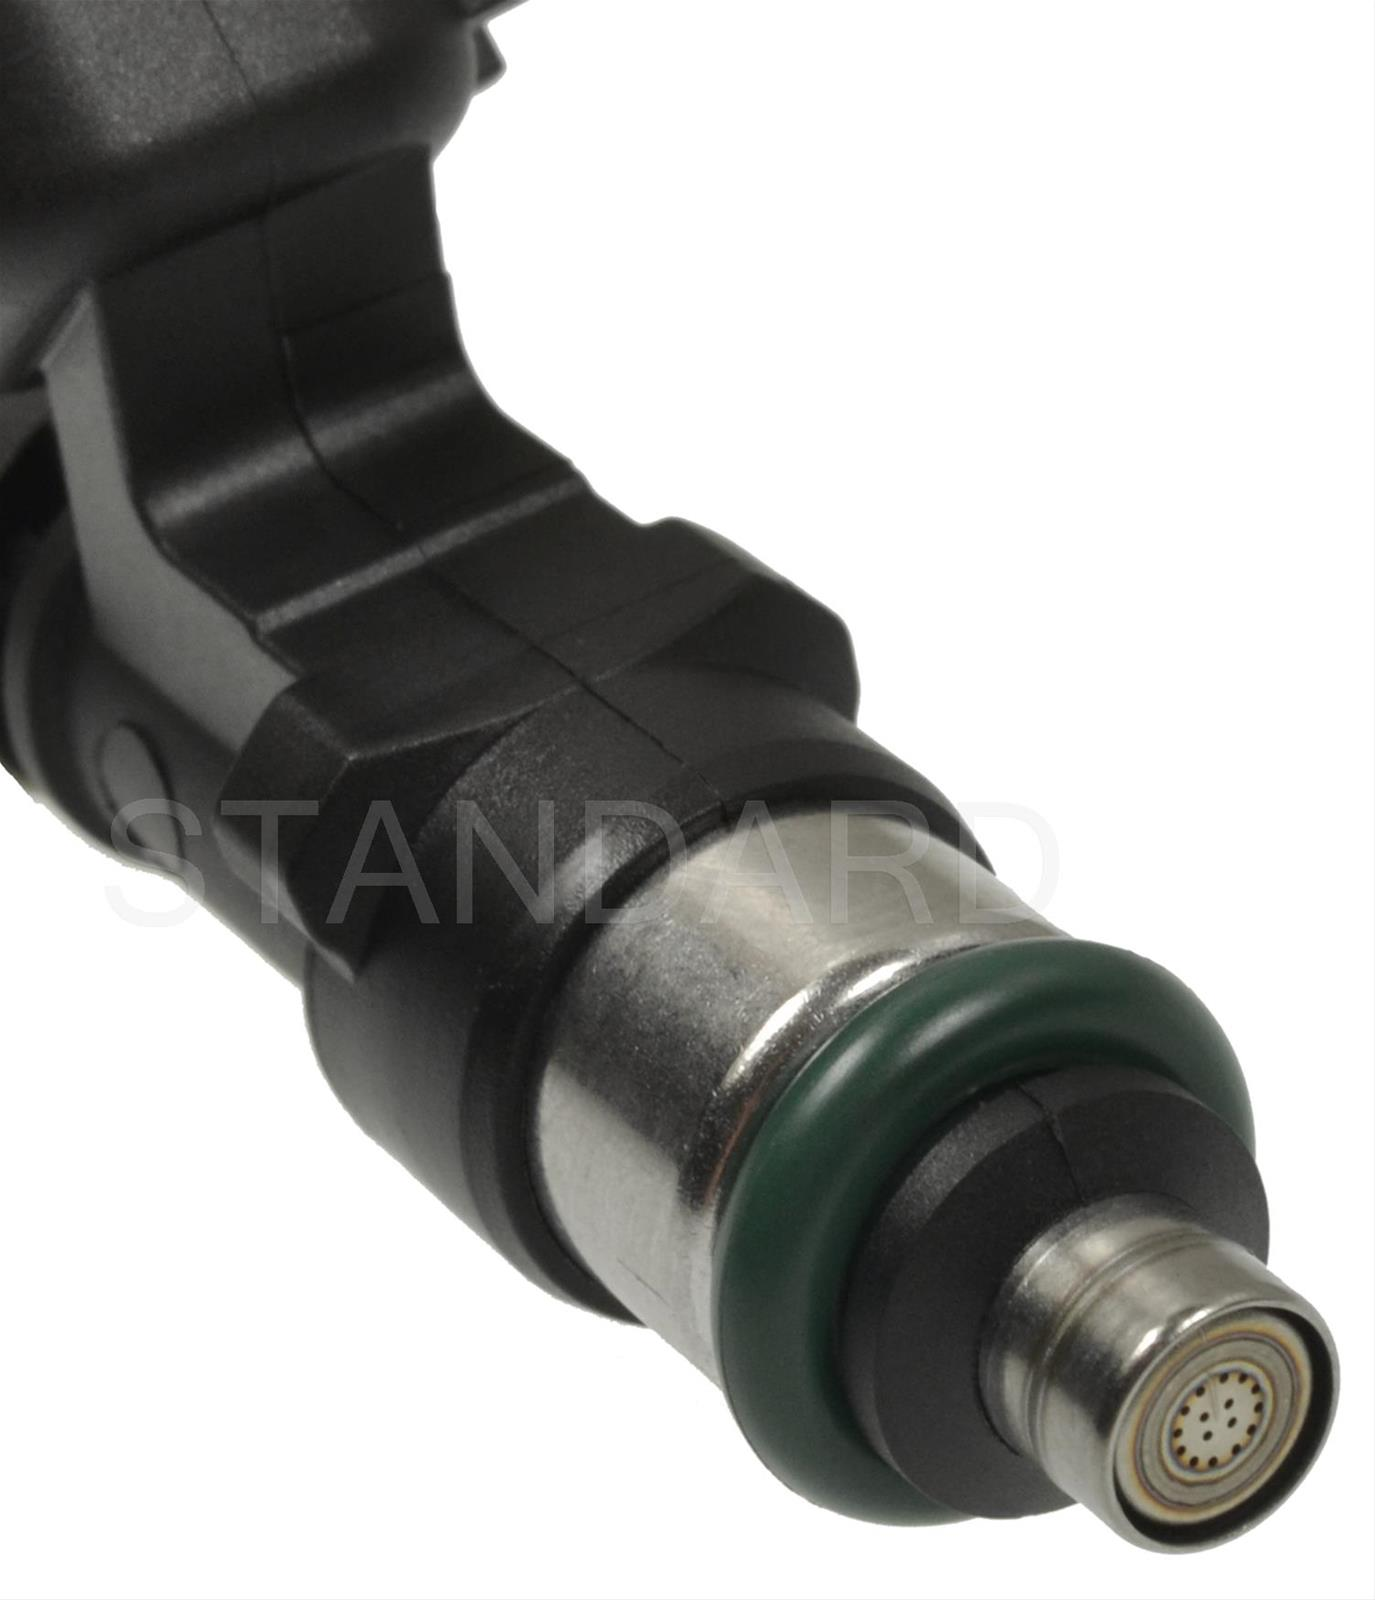 Standard Motor Products FJ1116 Fuel Injector